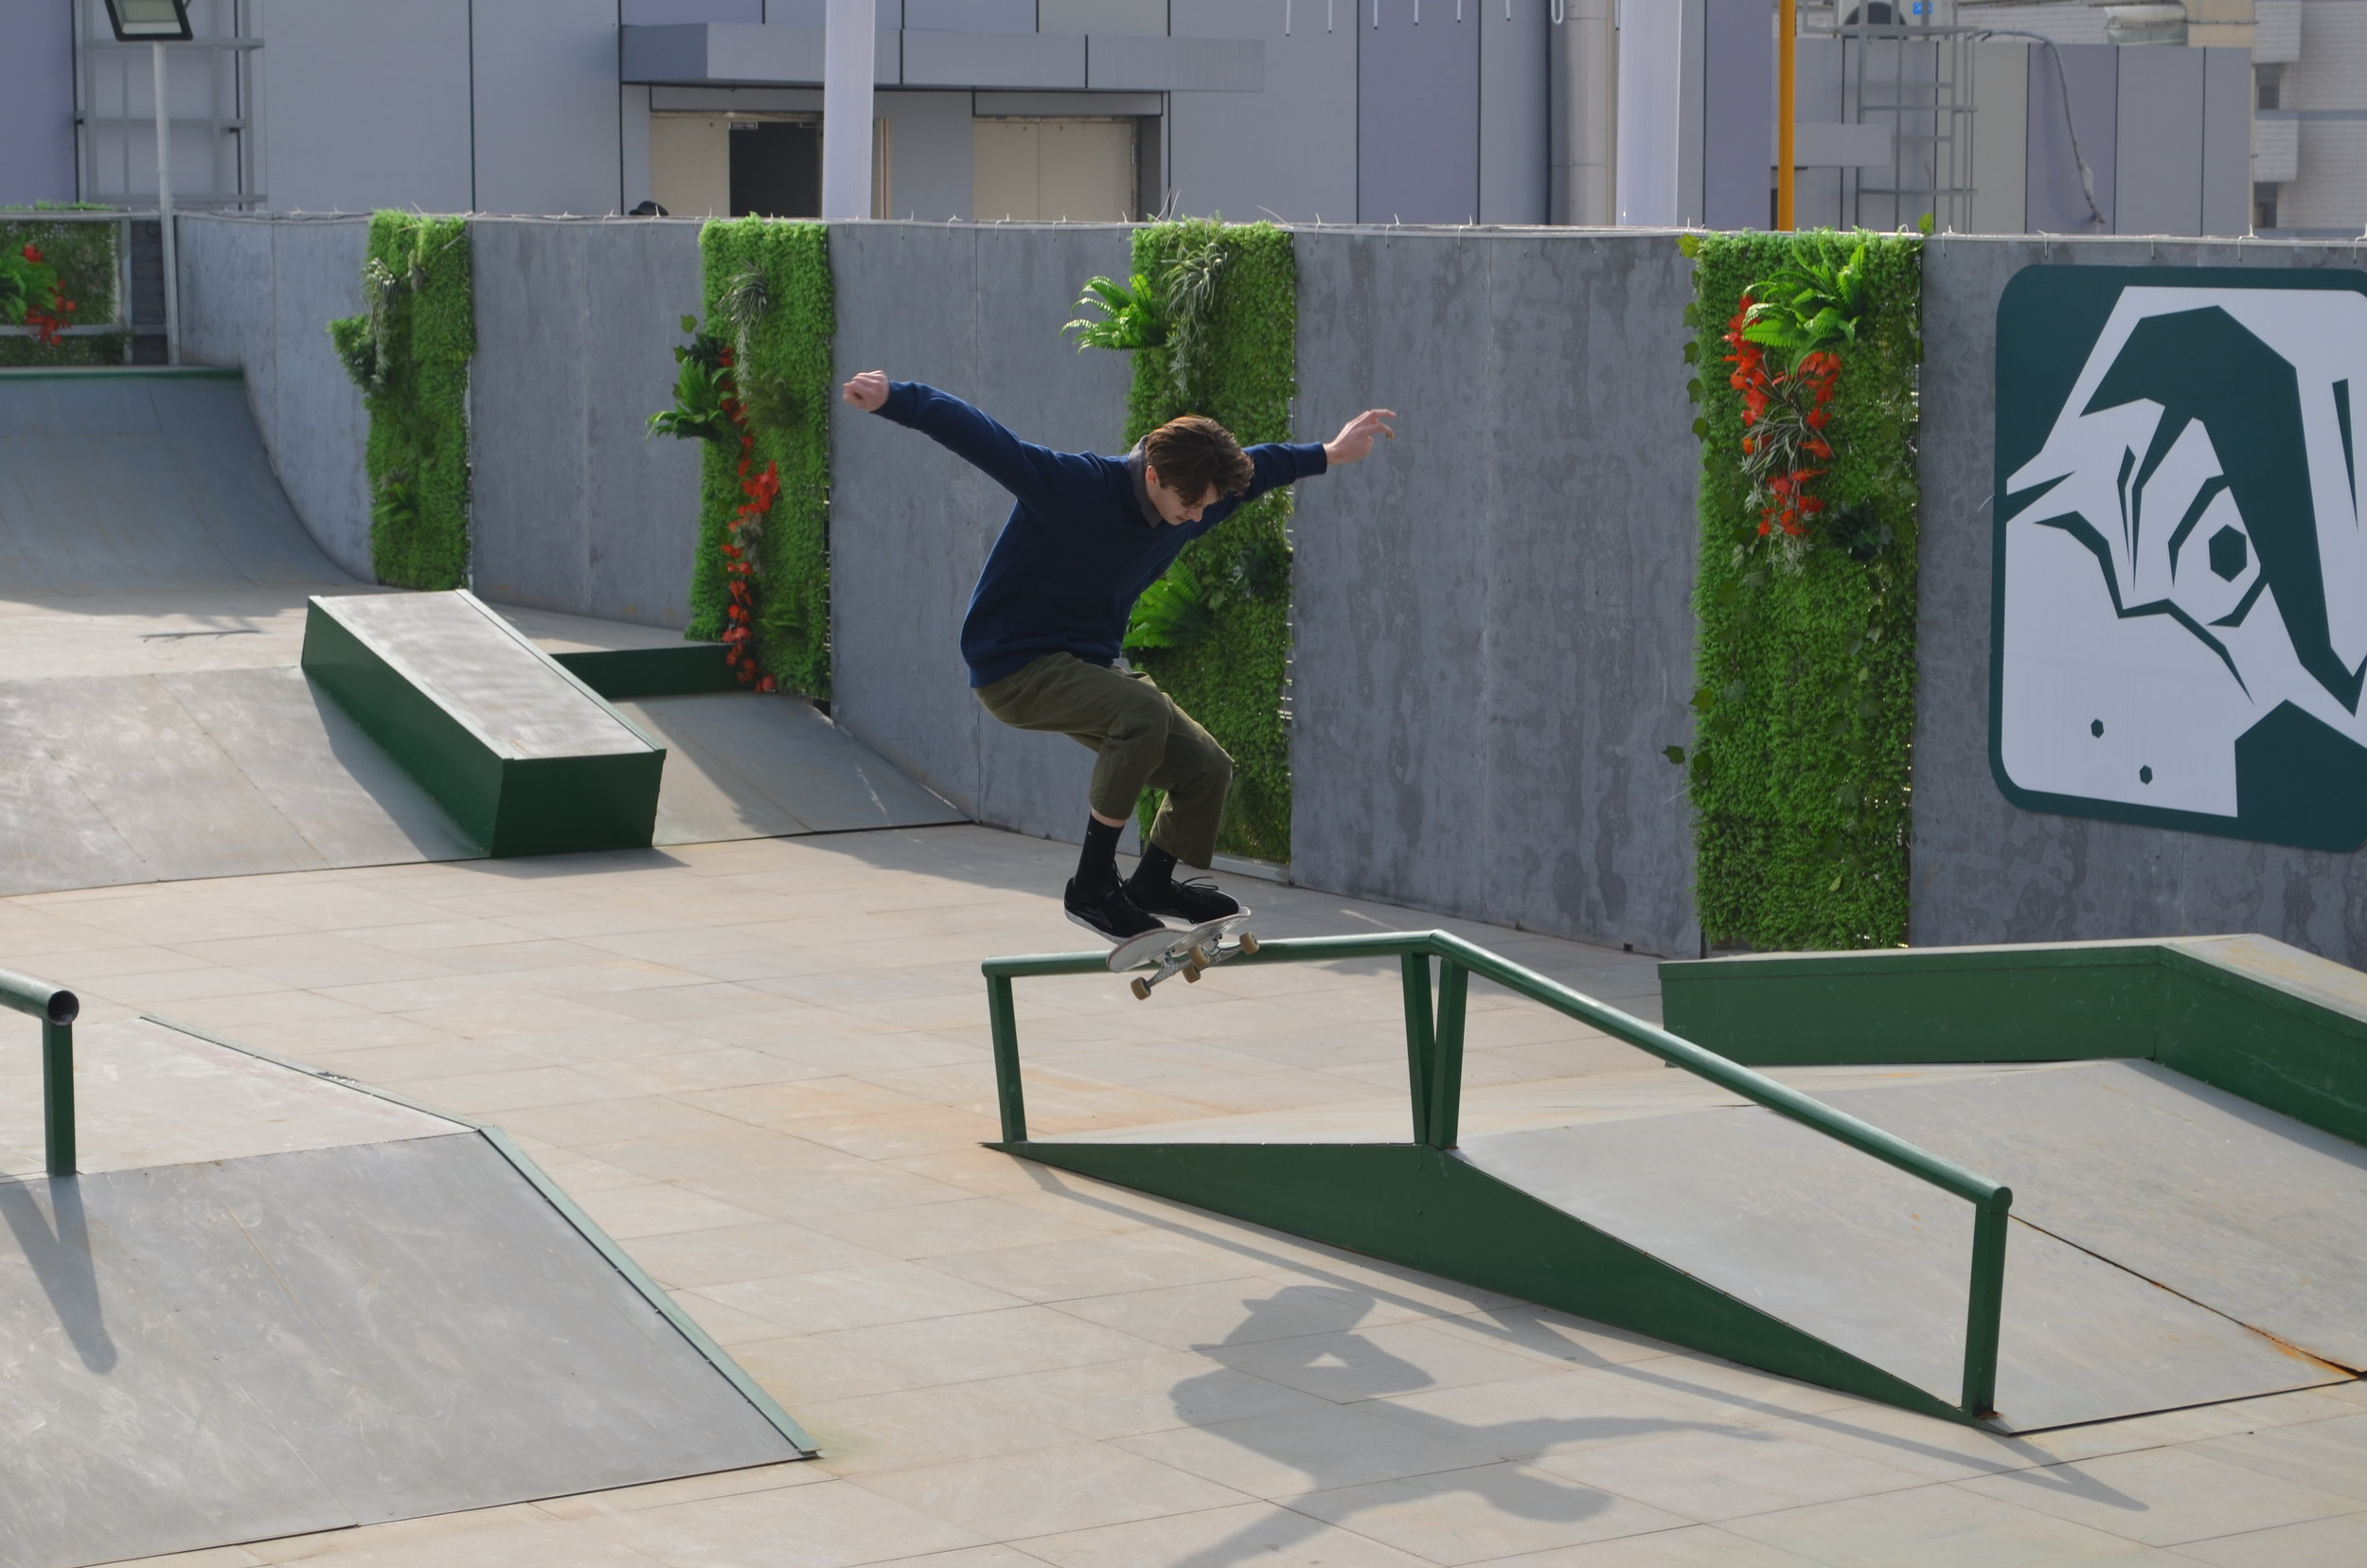 ROOFTOP SKATEPARK IN GULOU DISTRICT, NANJING ROSS OULLETTE